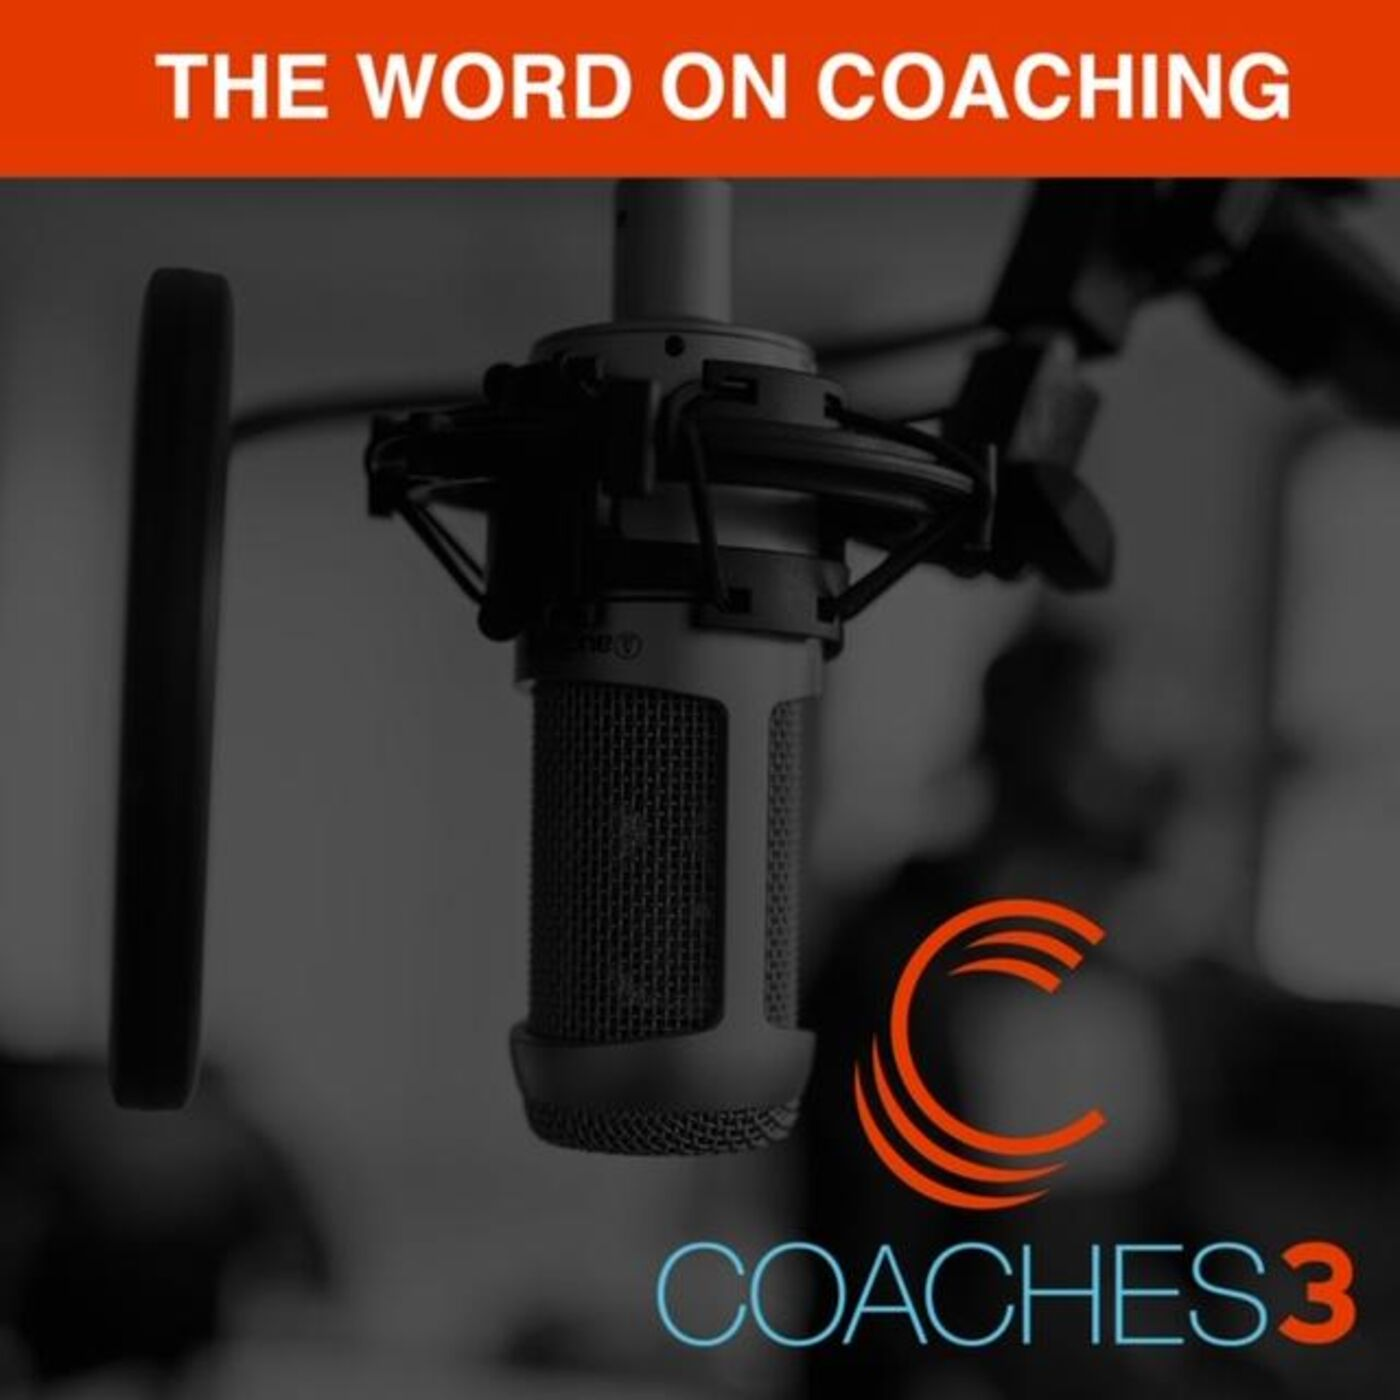 The Word on Coaching